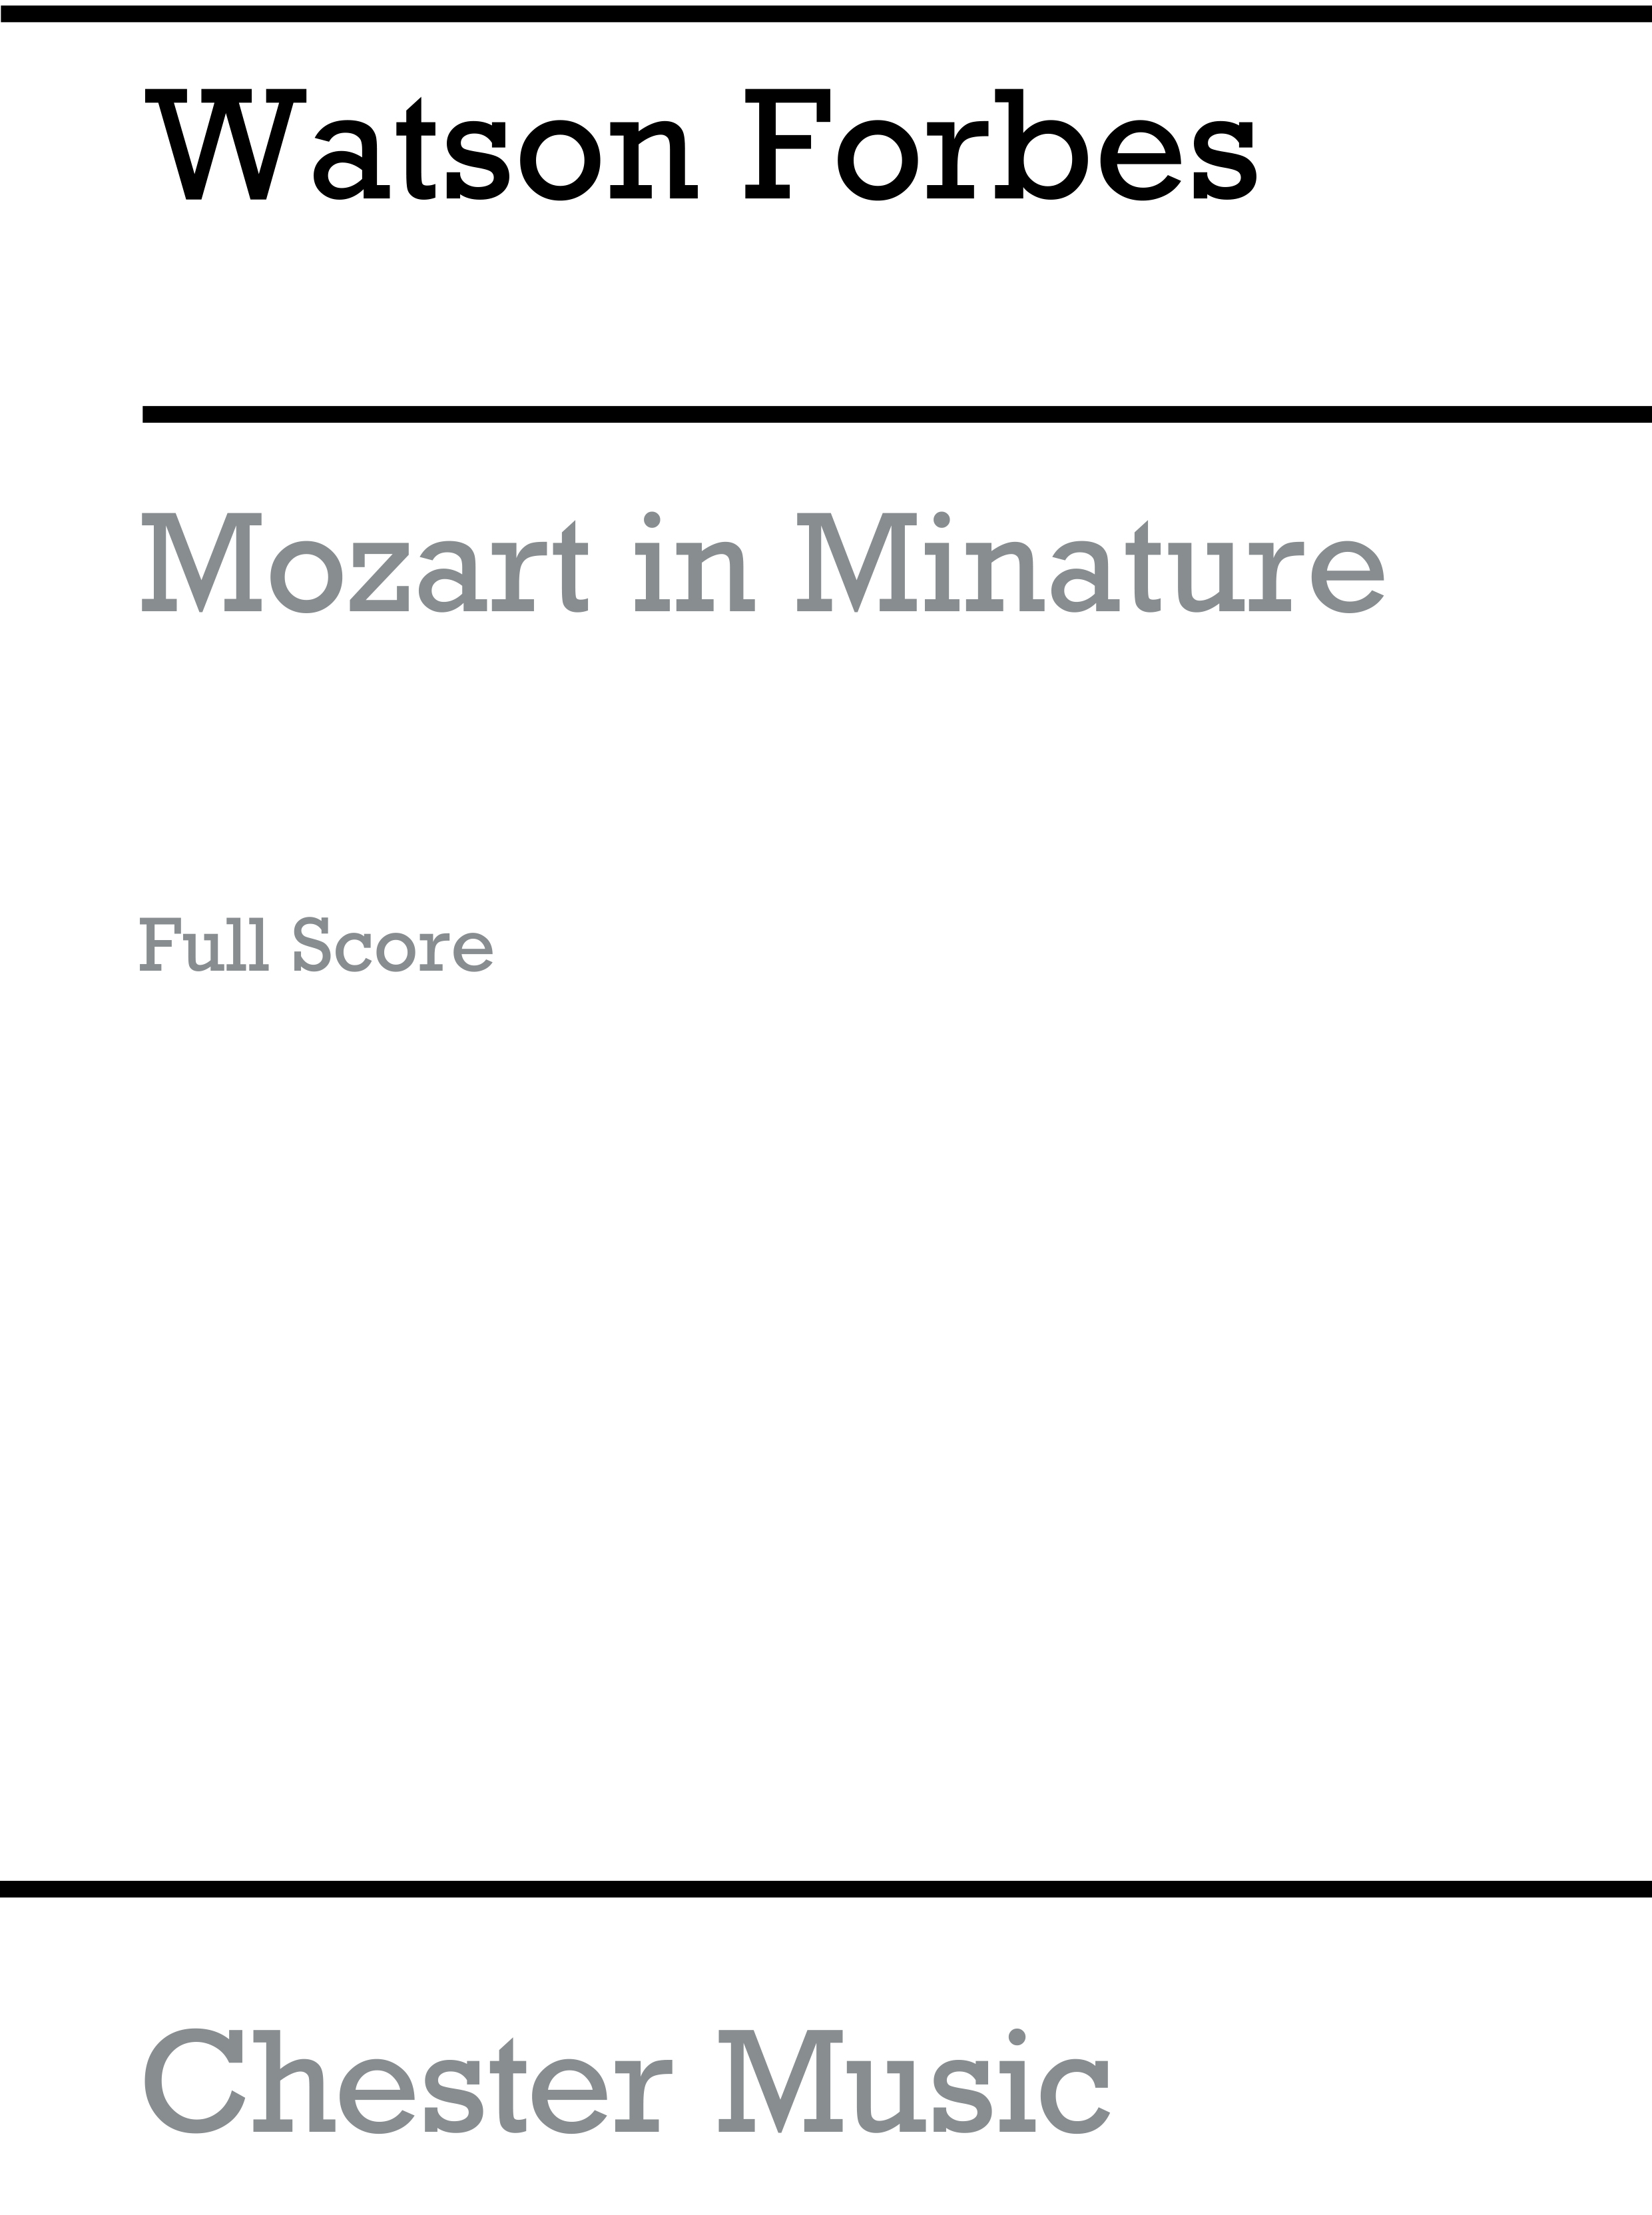 Wolfgang Amadeus Mozart: Playstrings Moderately Easy No. 6: Orchestra: Score